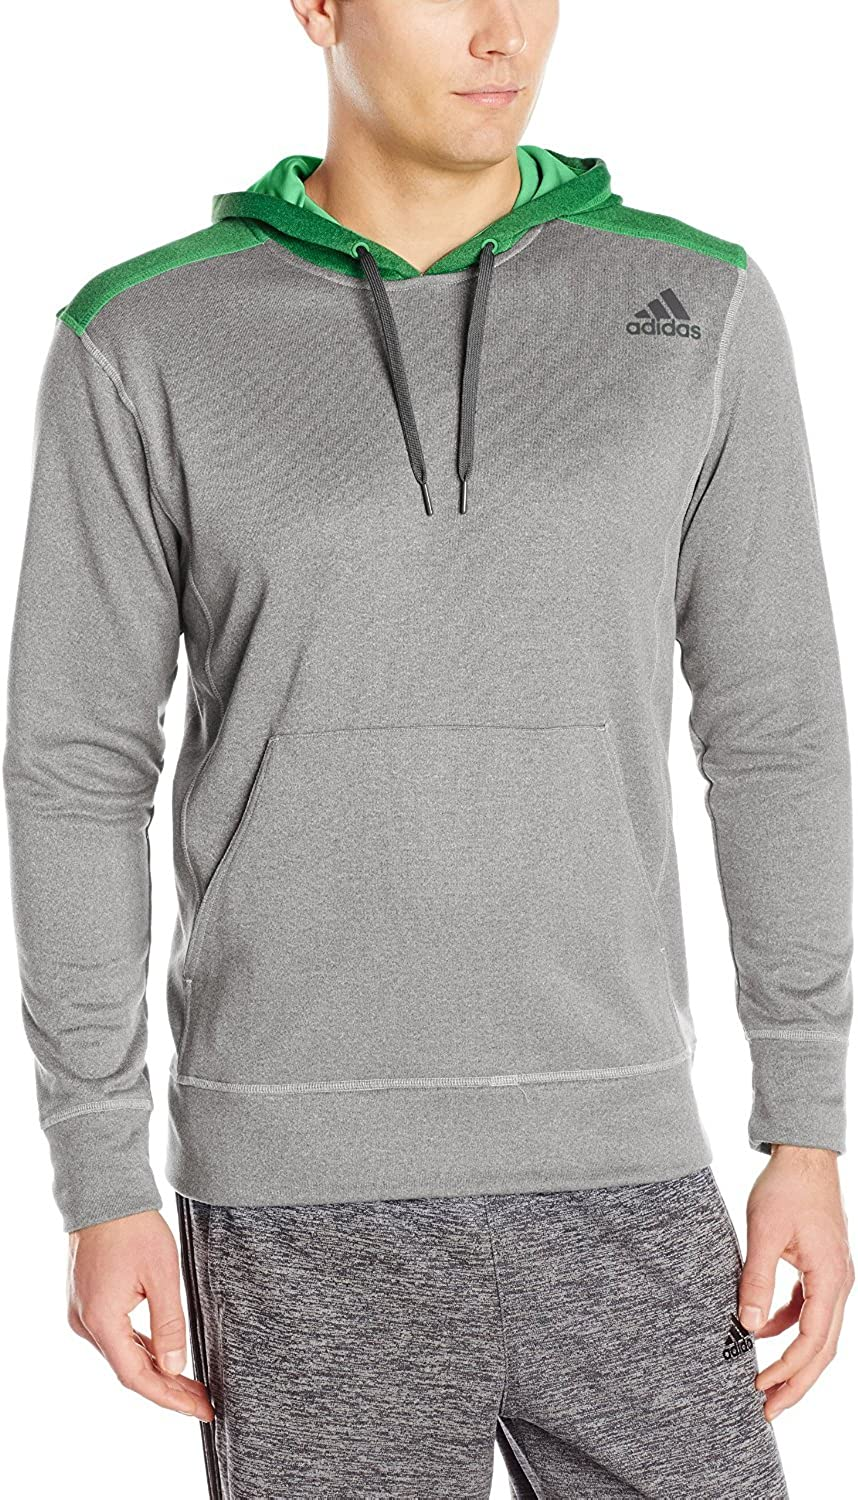 adidas Performance Over item handling Men's Max 45% OFF Ultimate Pullover Hoodie S Solid Grey